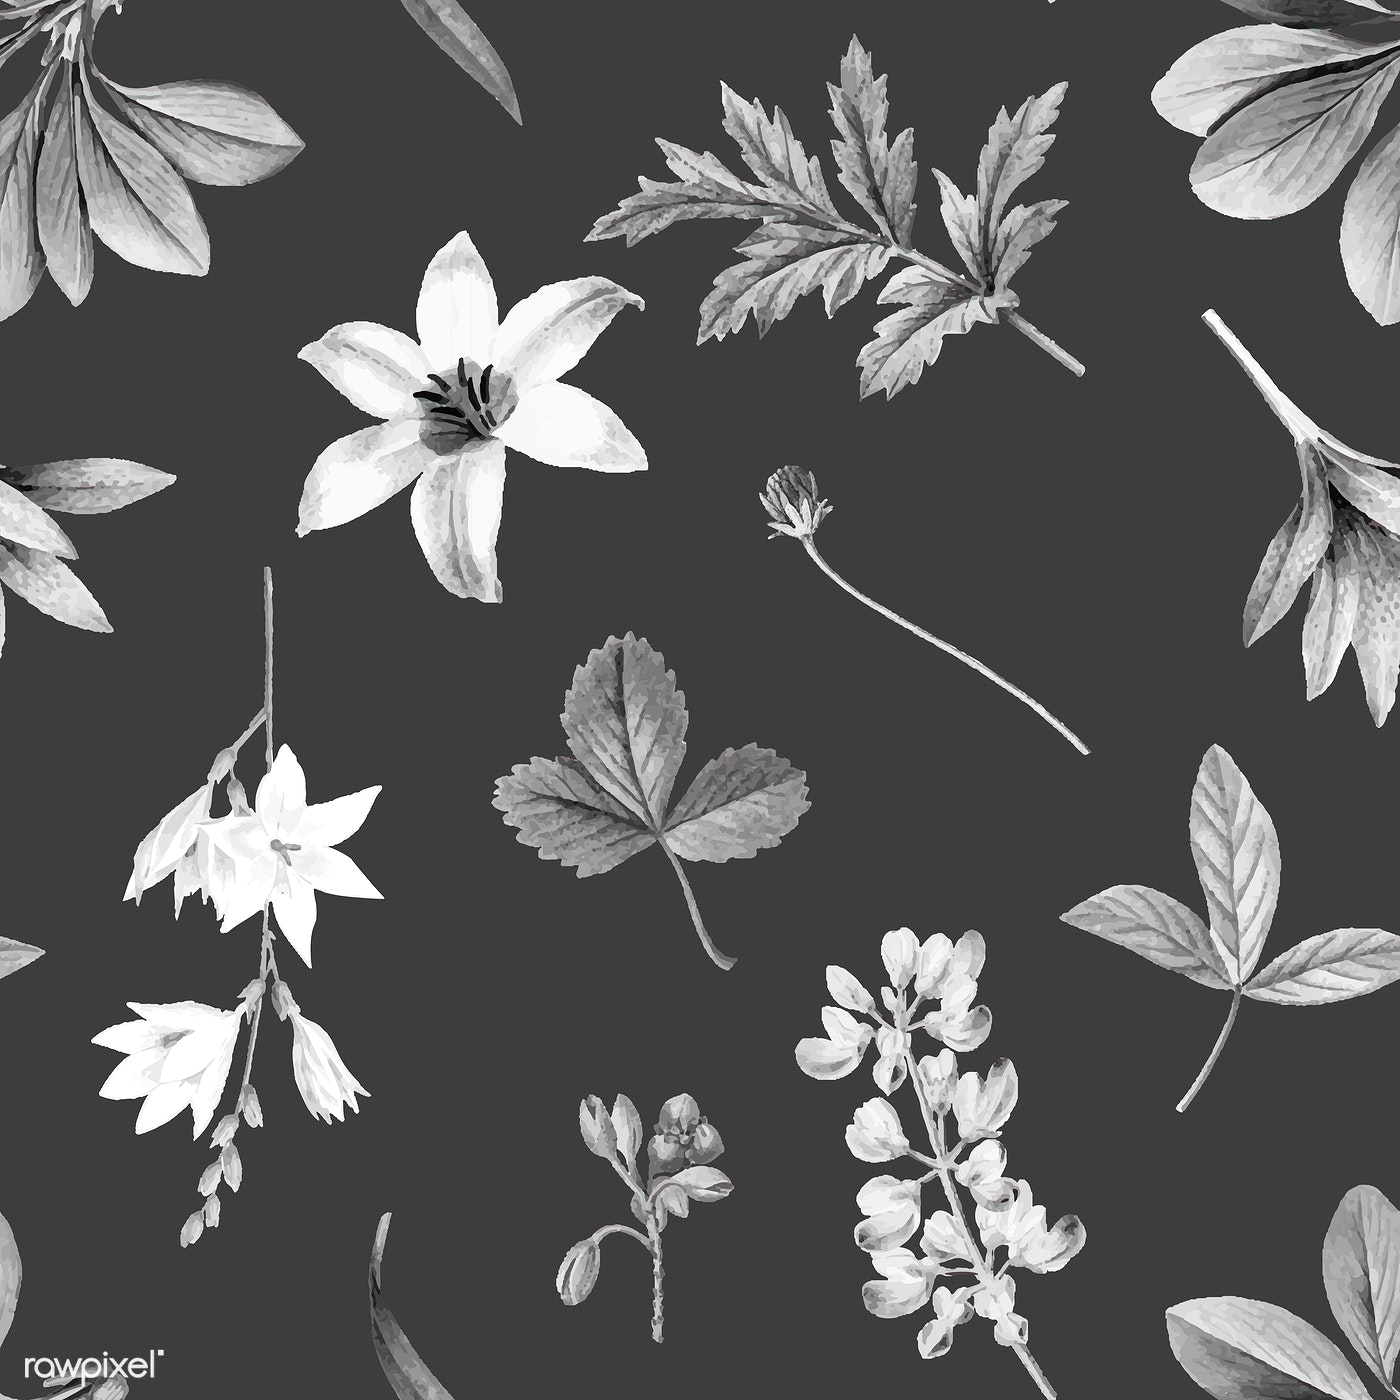 Floral Background Illustration Royalty Free Vector 1201127